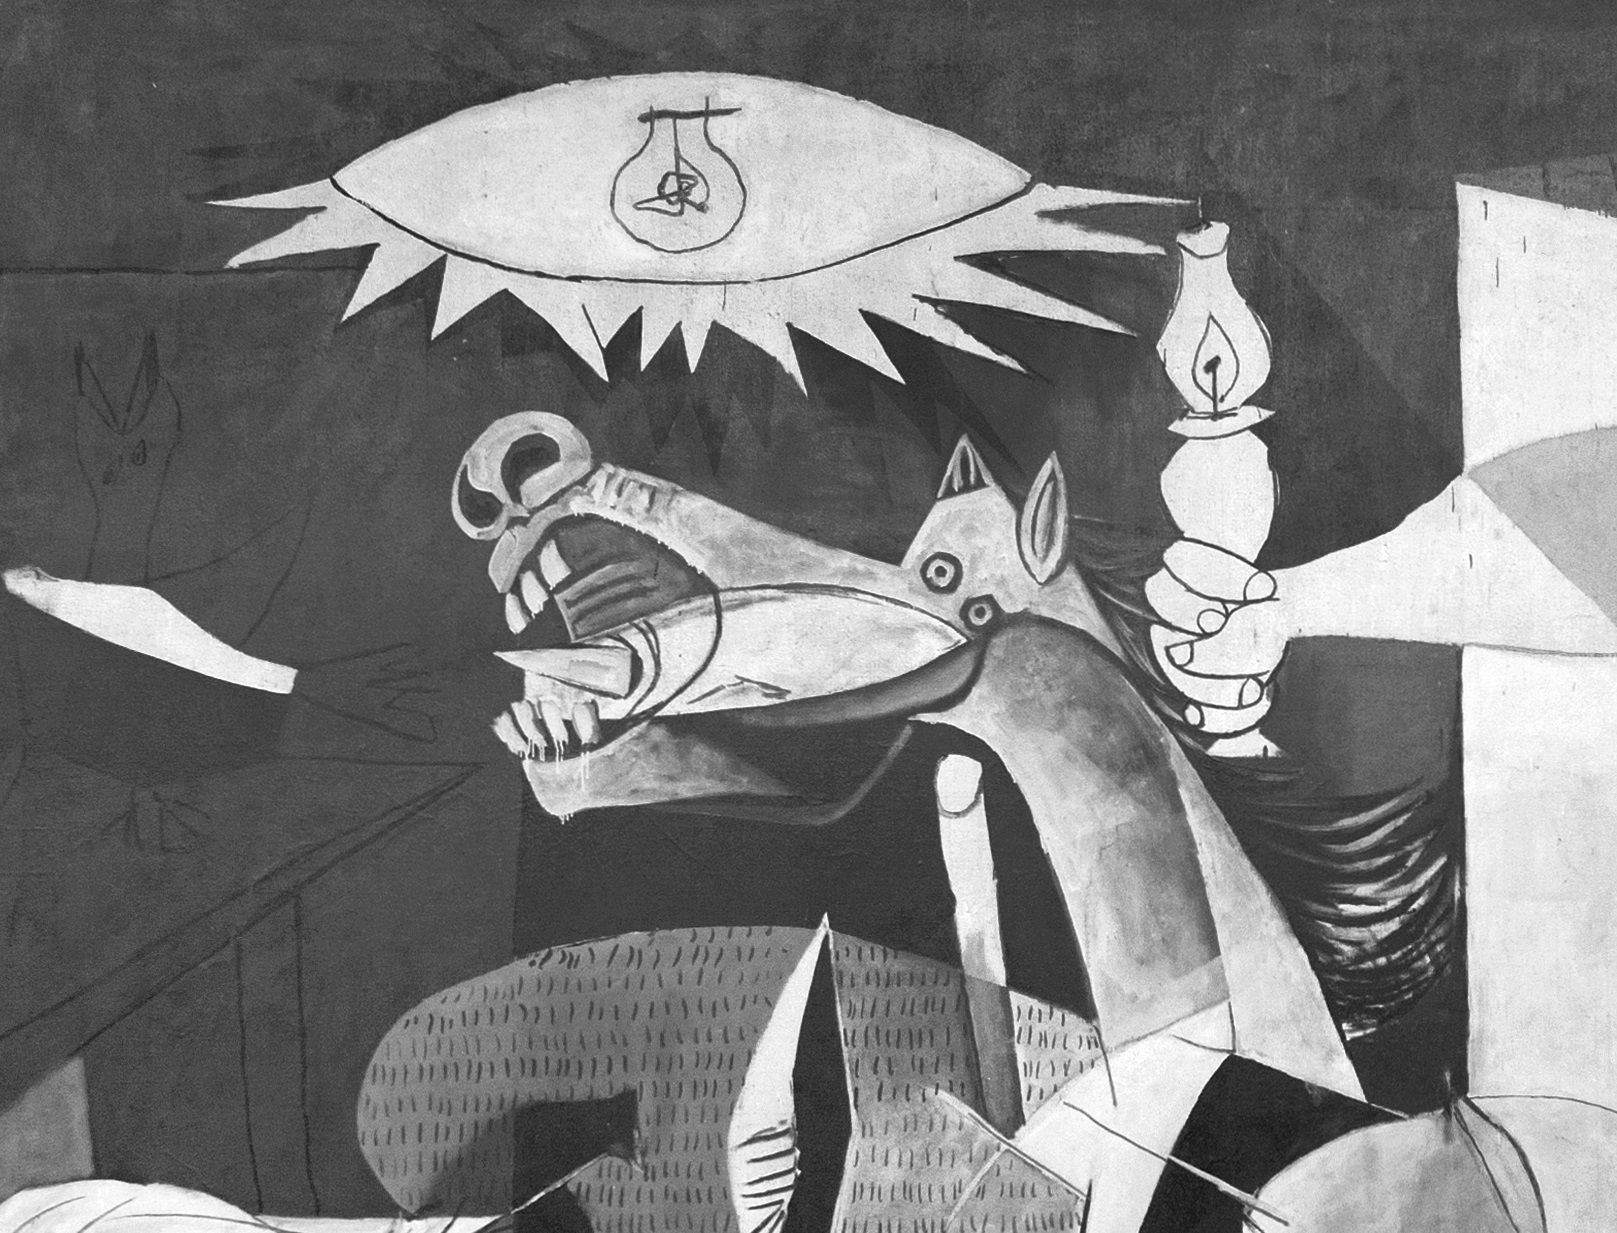 Pablo Picasso Guernica The horrors of war Surrealism art CAU